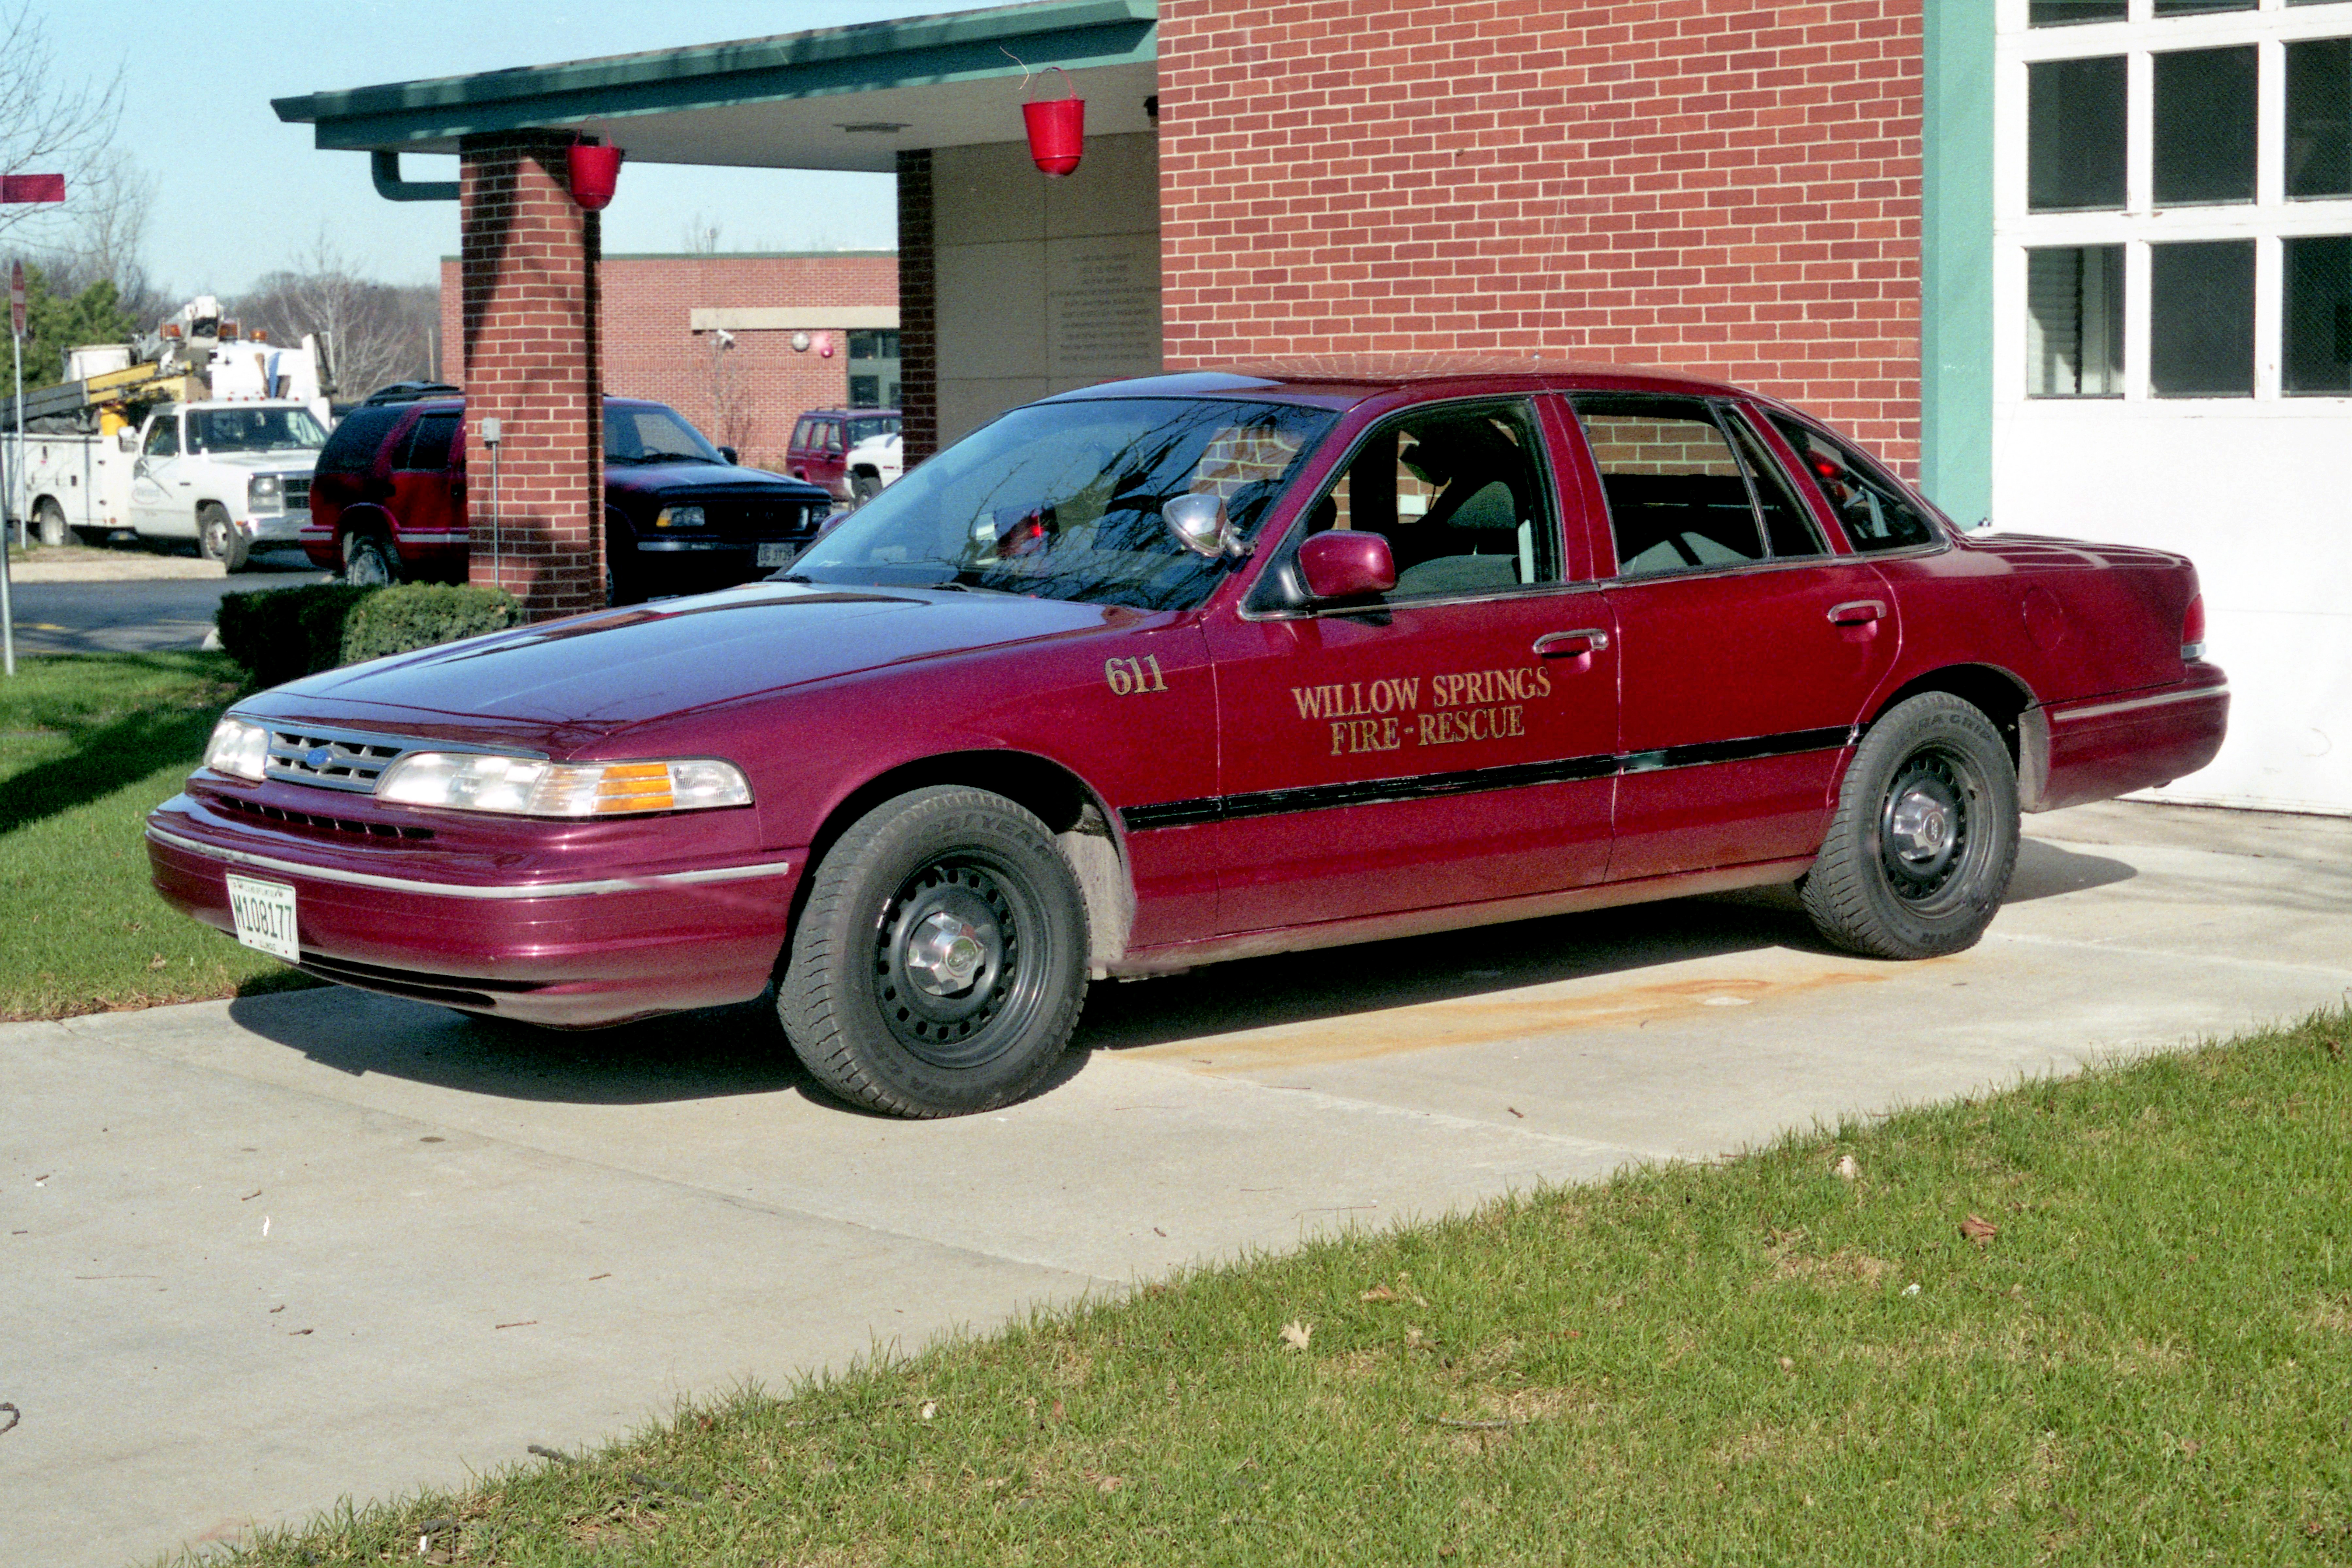 WILLOW SPRINGS CAR 611 1997 FOR CROWN VIC